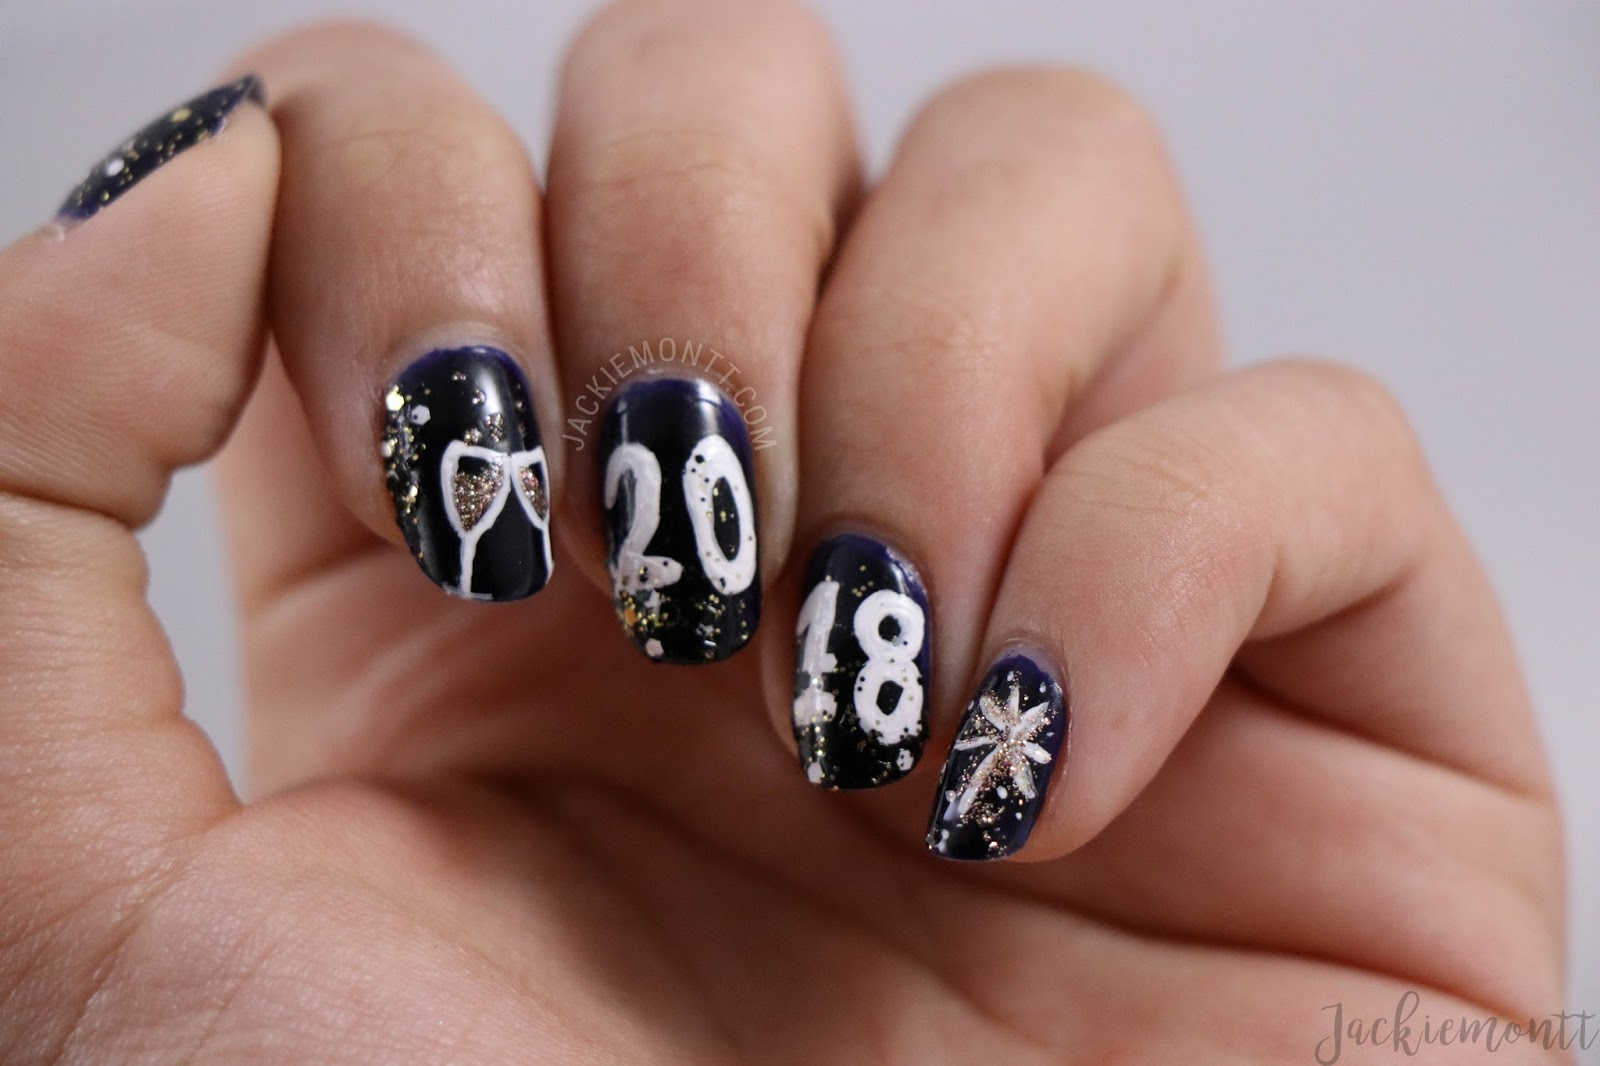 New Year's Eve Nail Art  - JACKIEMONTT